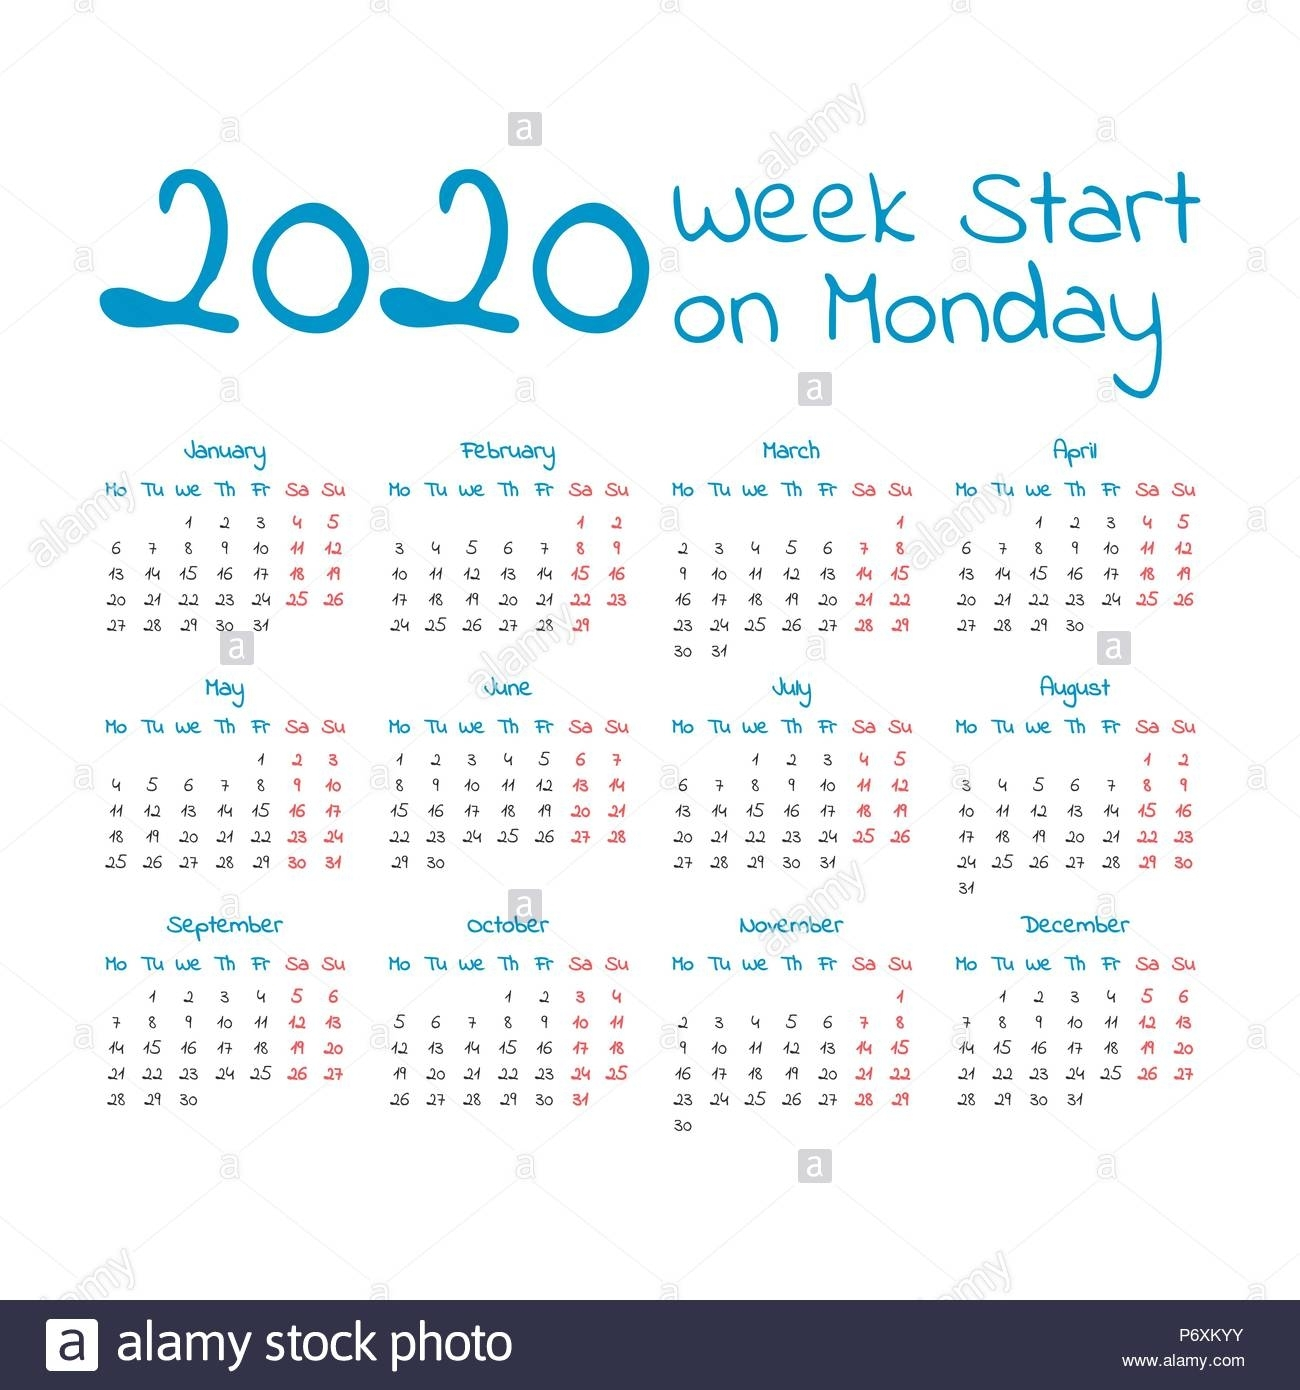 Monday Start Calendar 2020 - Colona.rsd7 in 2020 Calendar Starting On Moday